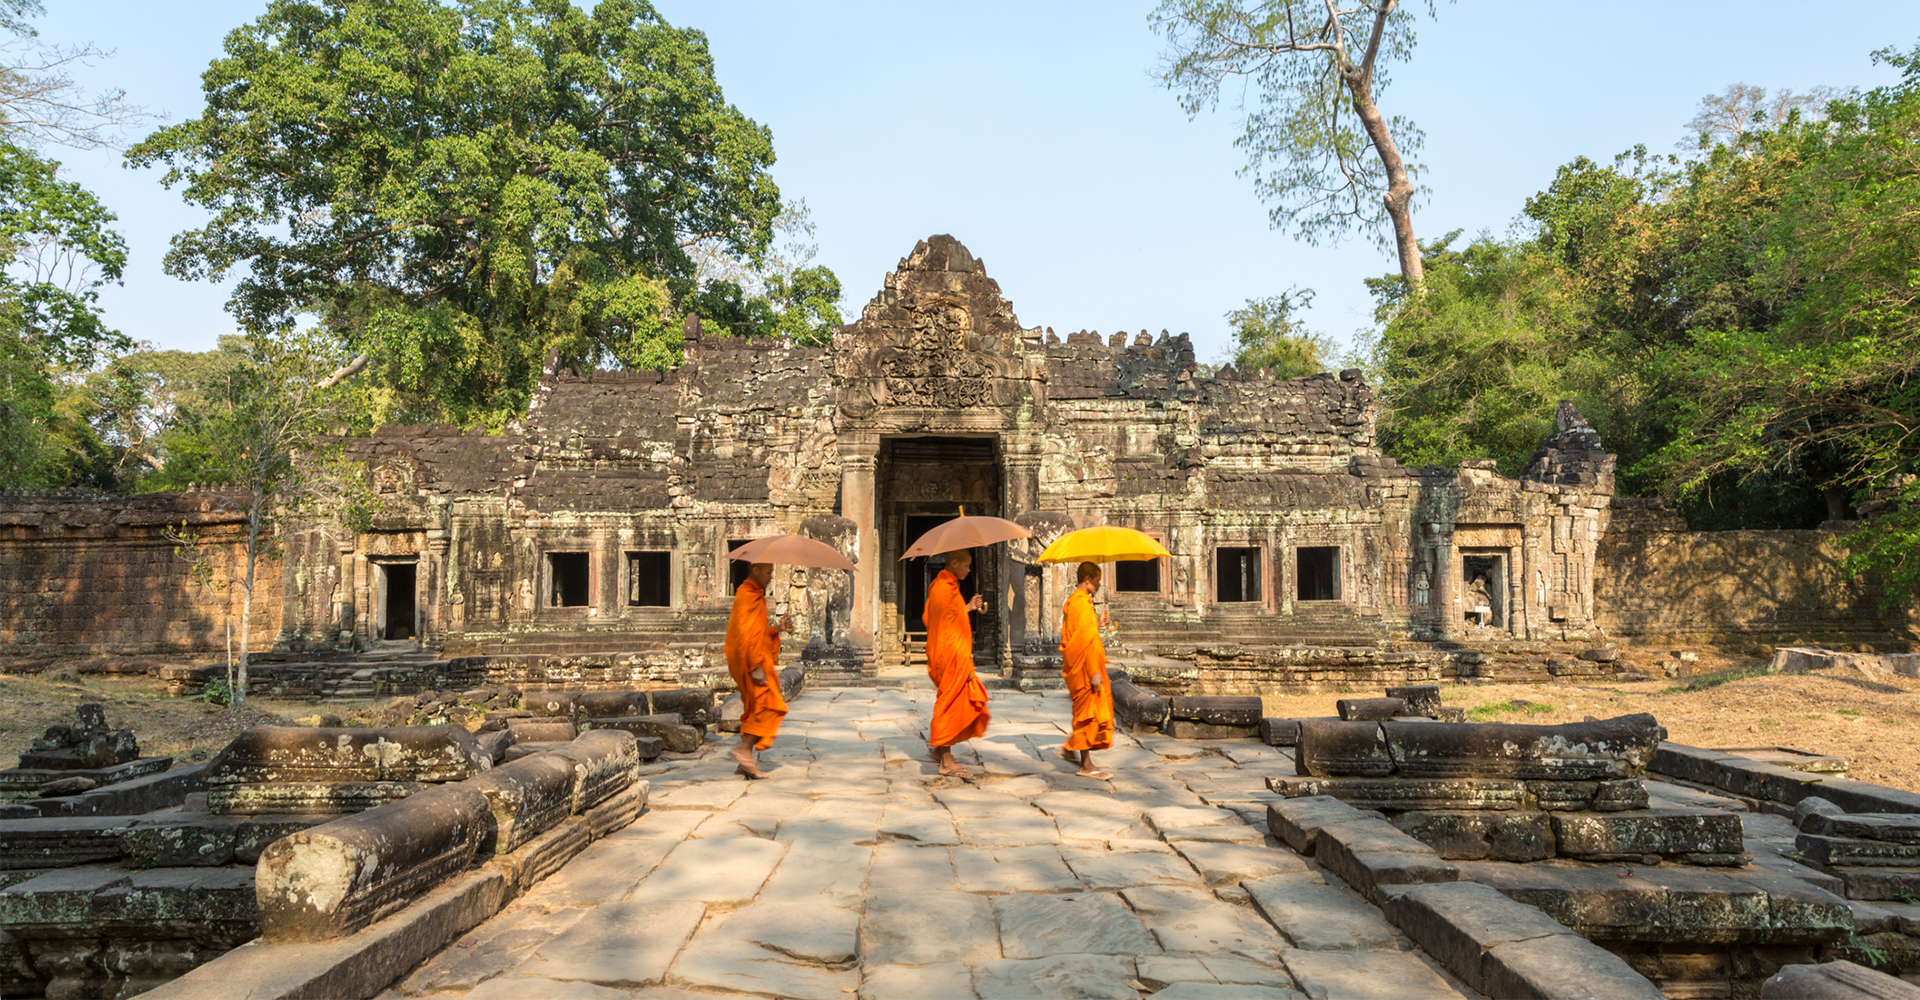 Three monks with umbrellas walking across Preah Khan Temple in Siem Reap, in Cambodia